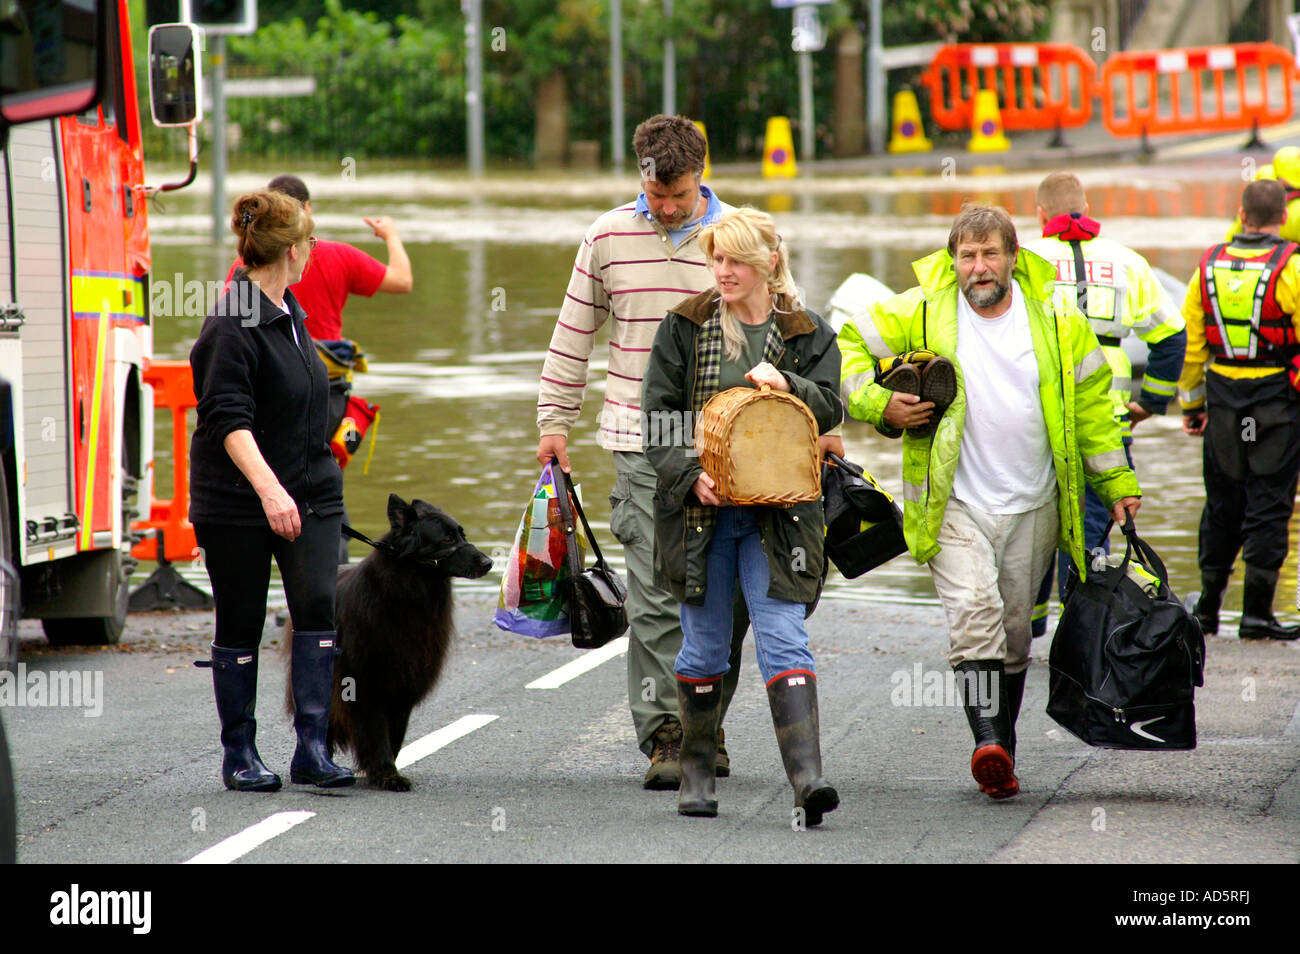 People and their pets being rescued after the flood of the century. England 2008 - Stock Image